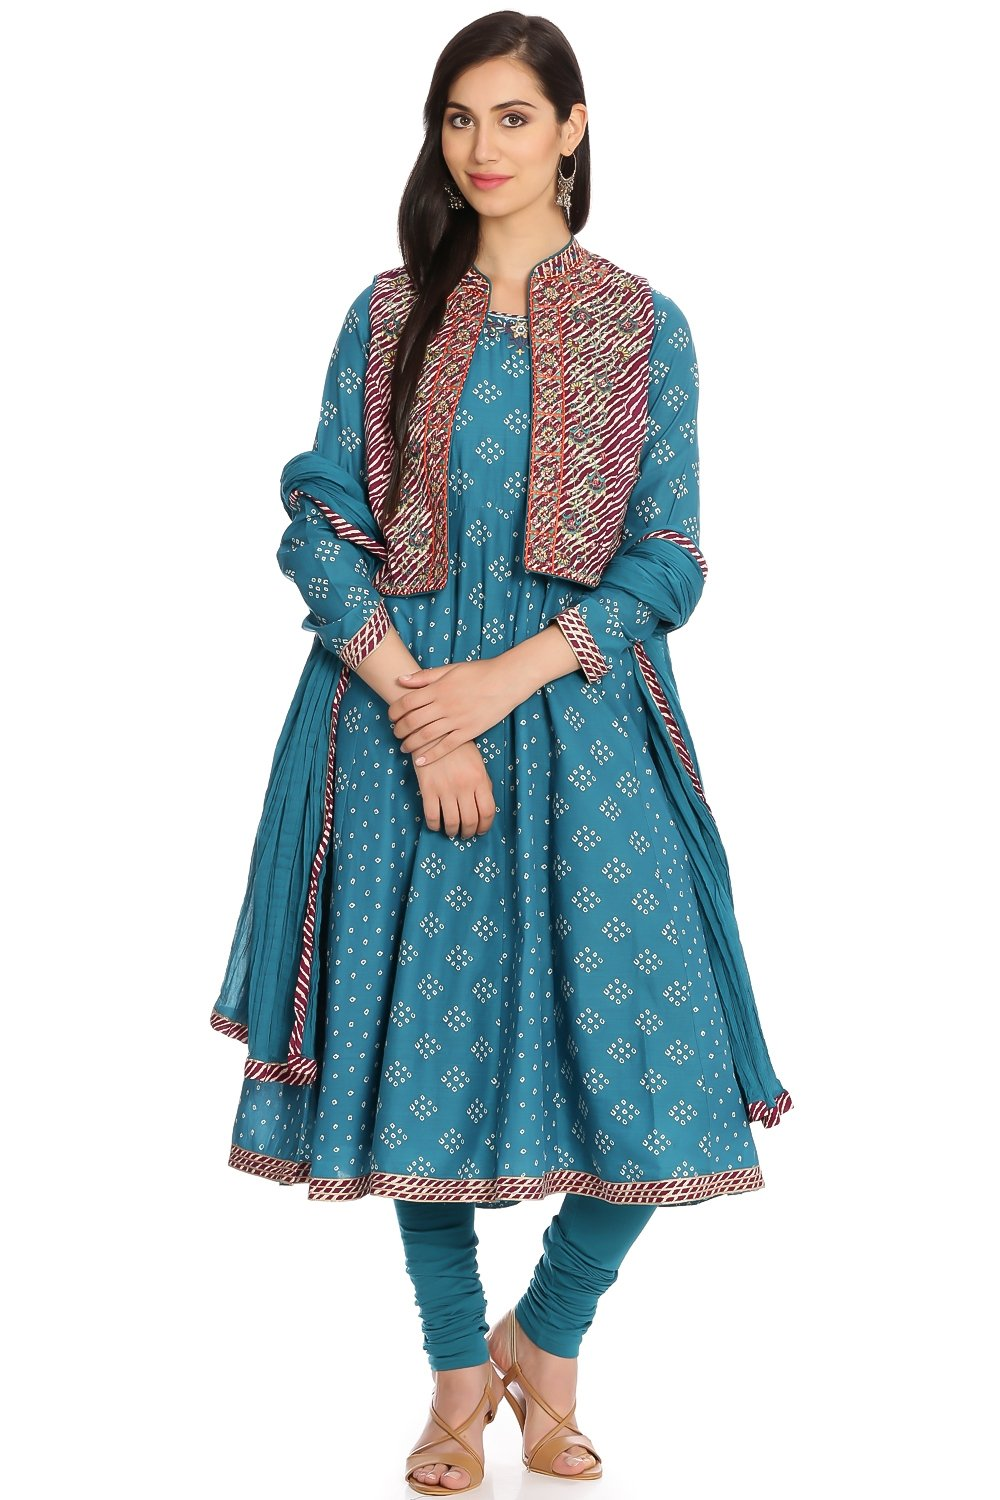 9773c3733a83d Buy Online Biba Turquoise Anarkali Cotton Suit Set for Women & Girls at  Best Prices in Biba India-SK